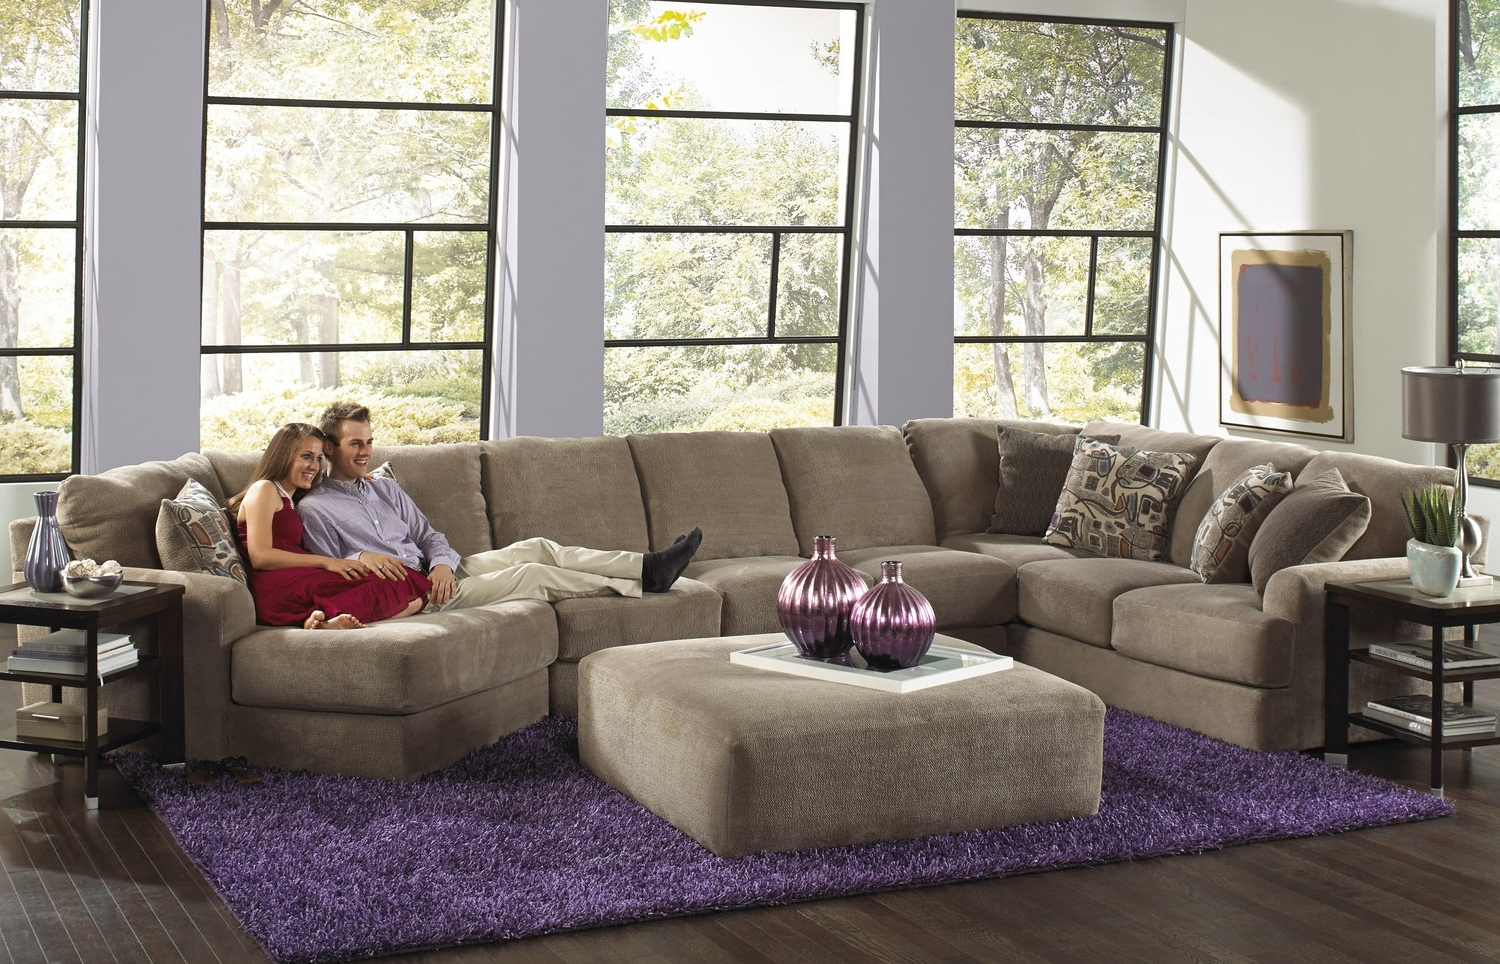 Strange Displaying Gallery Of 110X110 Sectional Sofas View 11 Of 20 Pabps2019 Chair Design Images Pabps2019Com